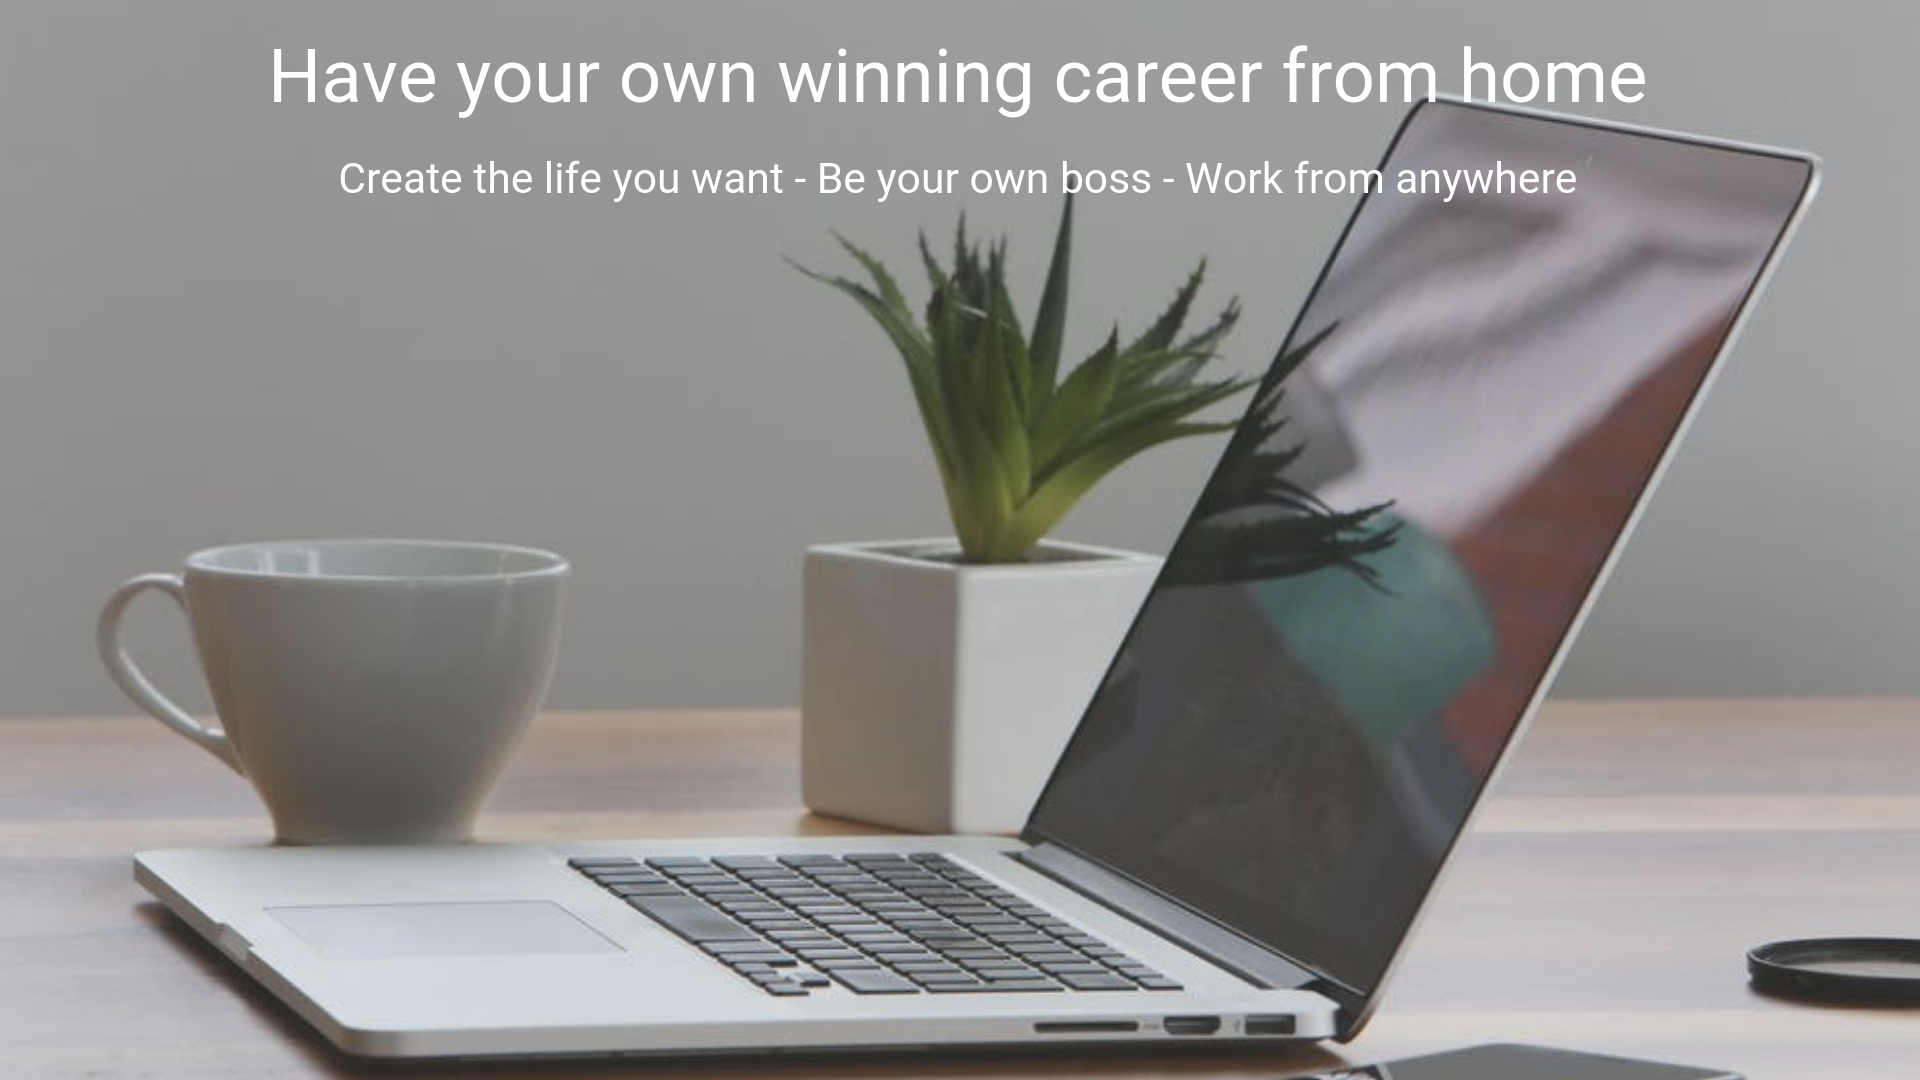 Work online anywhere - create the life you want